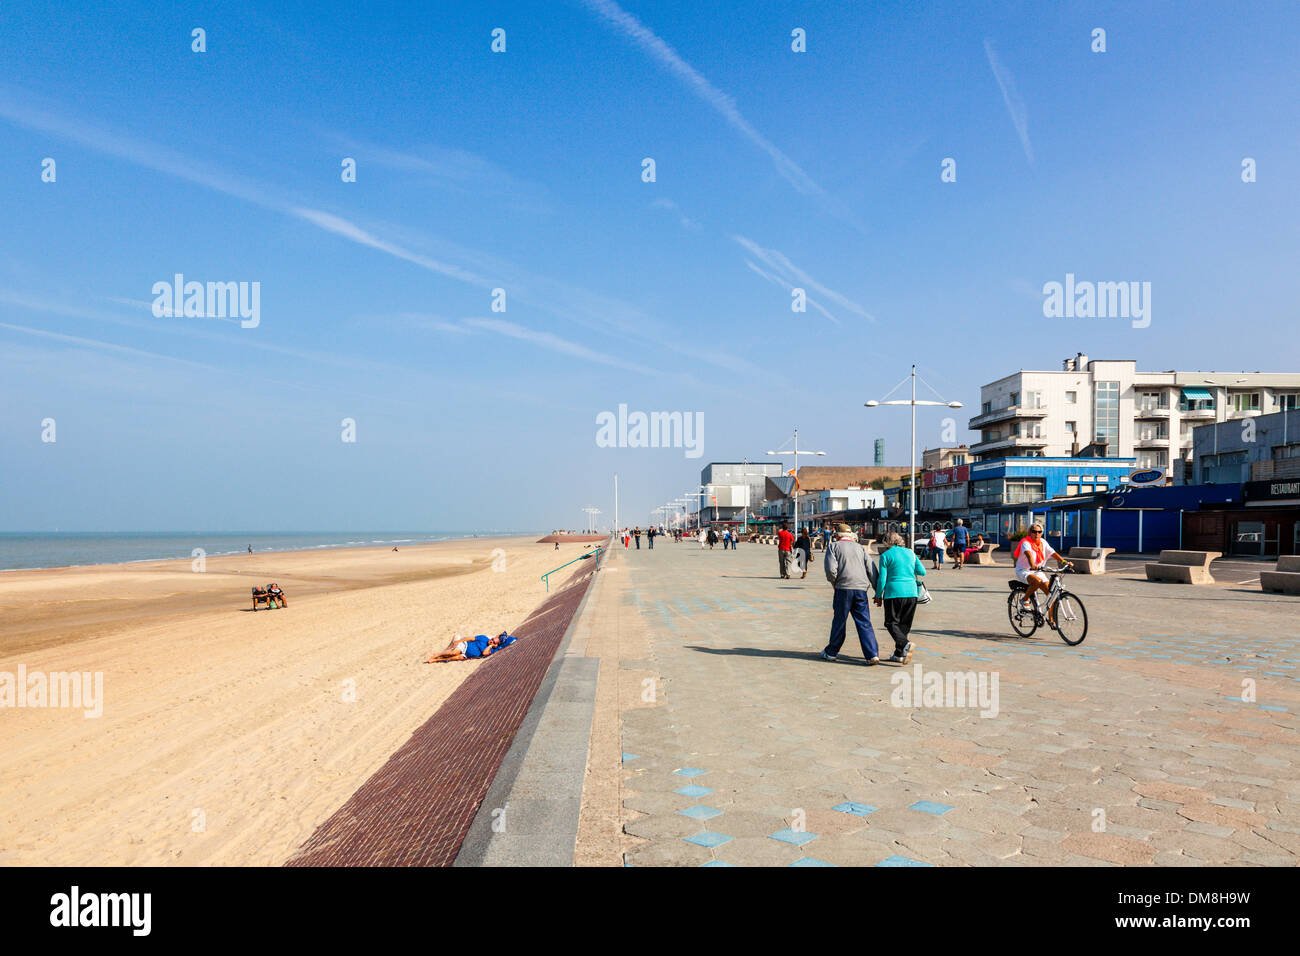 Seafront promenade with people, Dunkirk, France - Stock Image